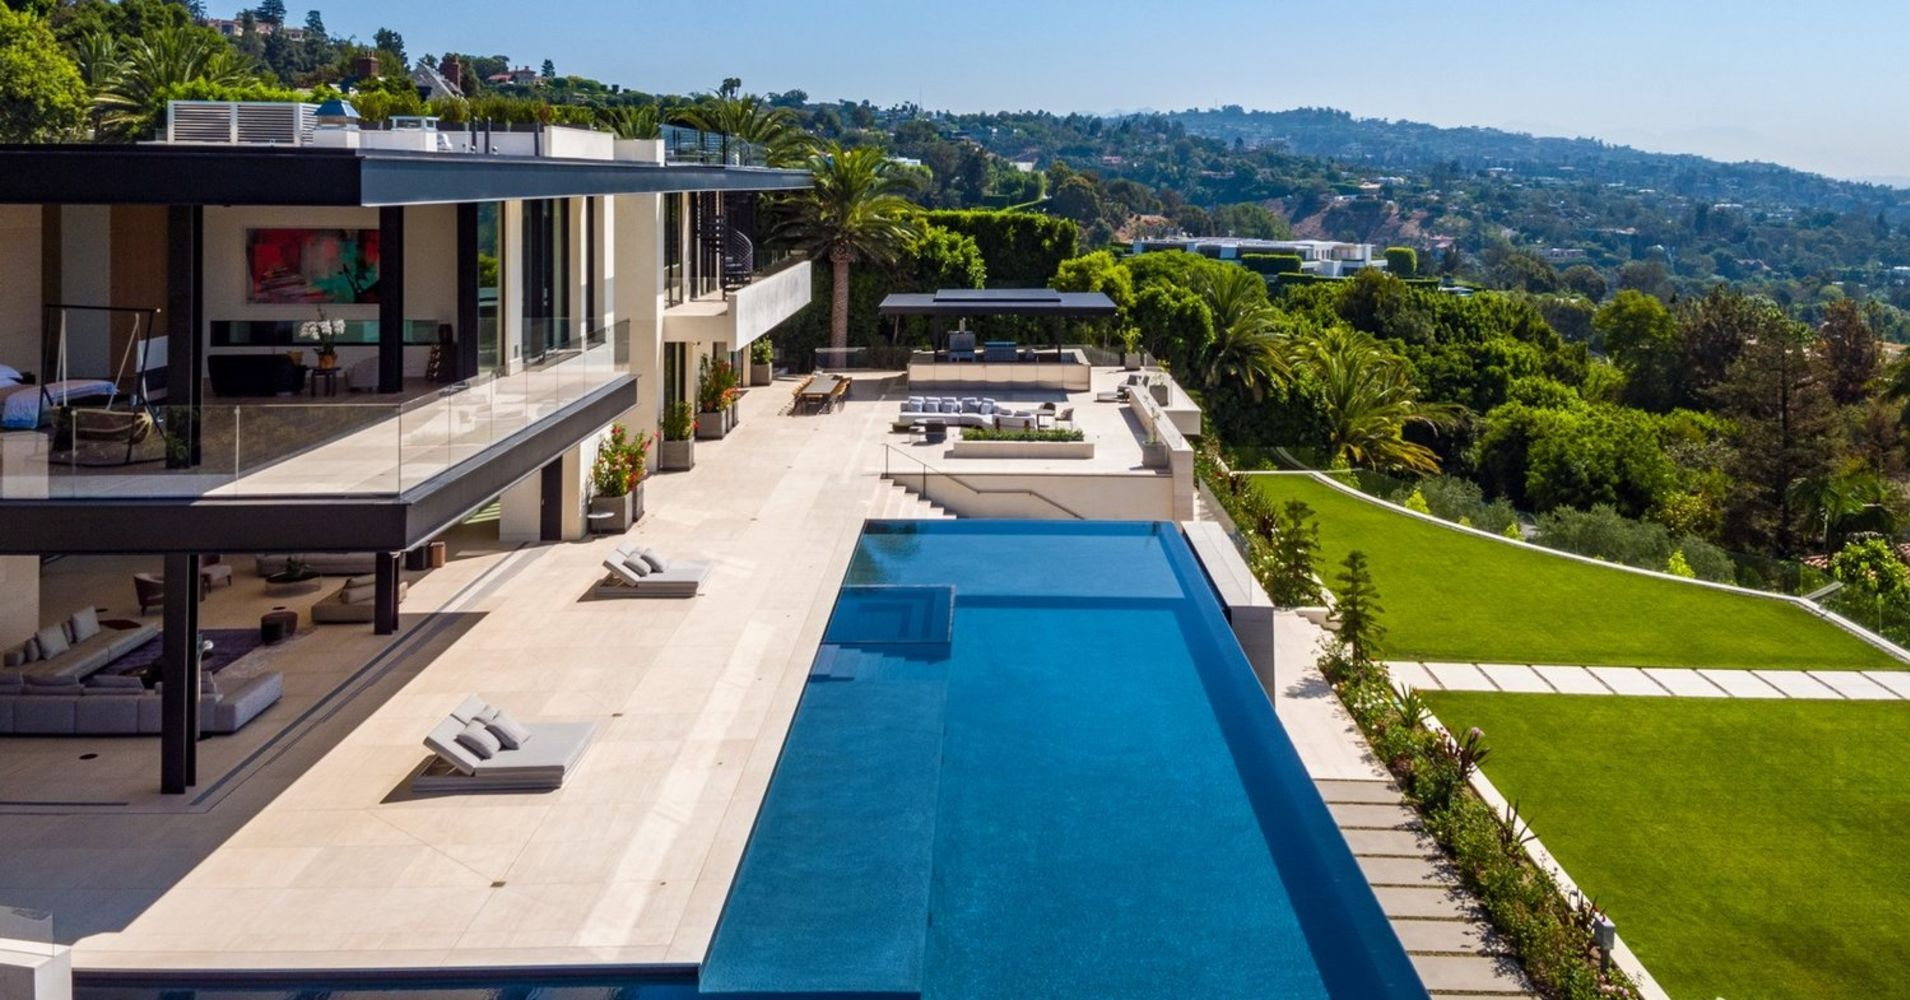 Celebrity surgeon went 'all in' on 180 million Bel Air